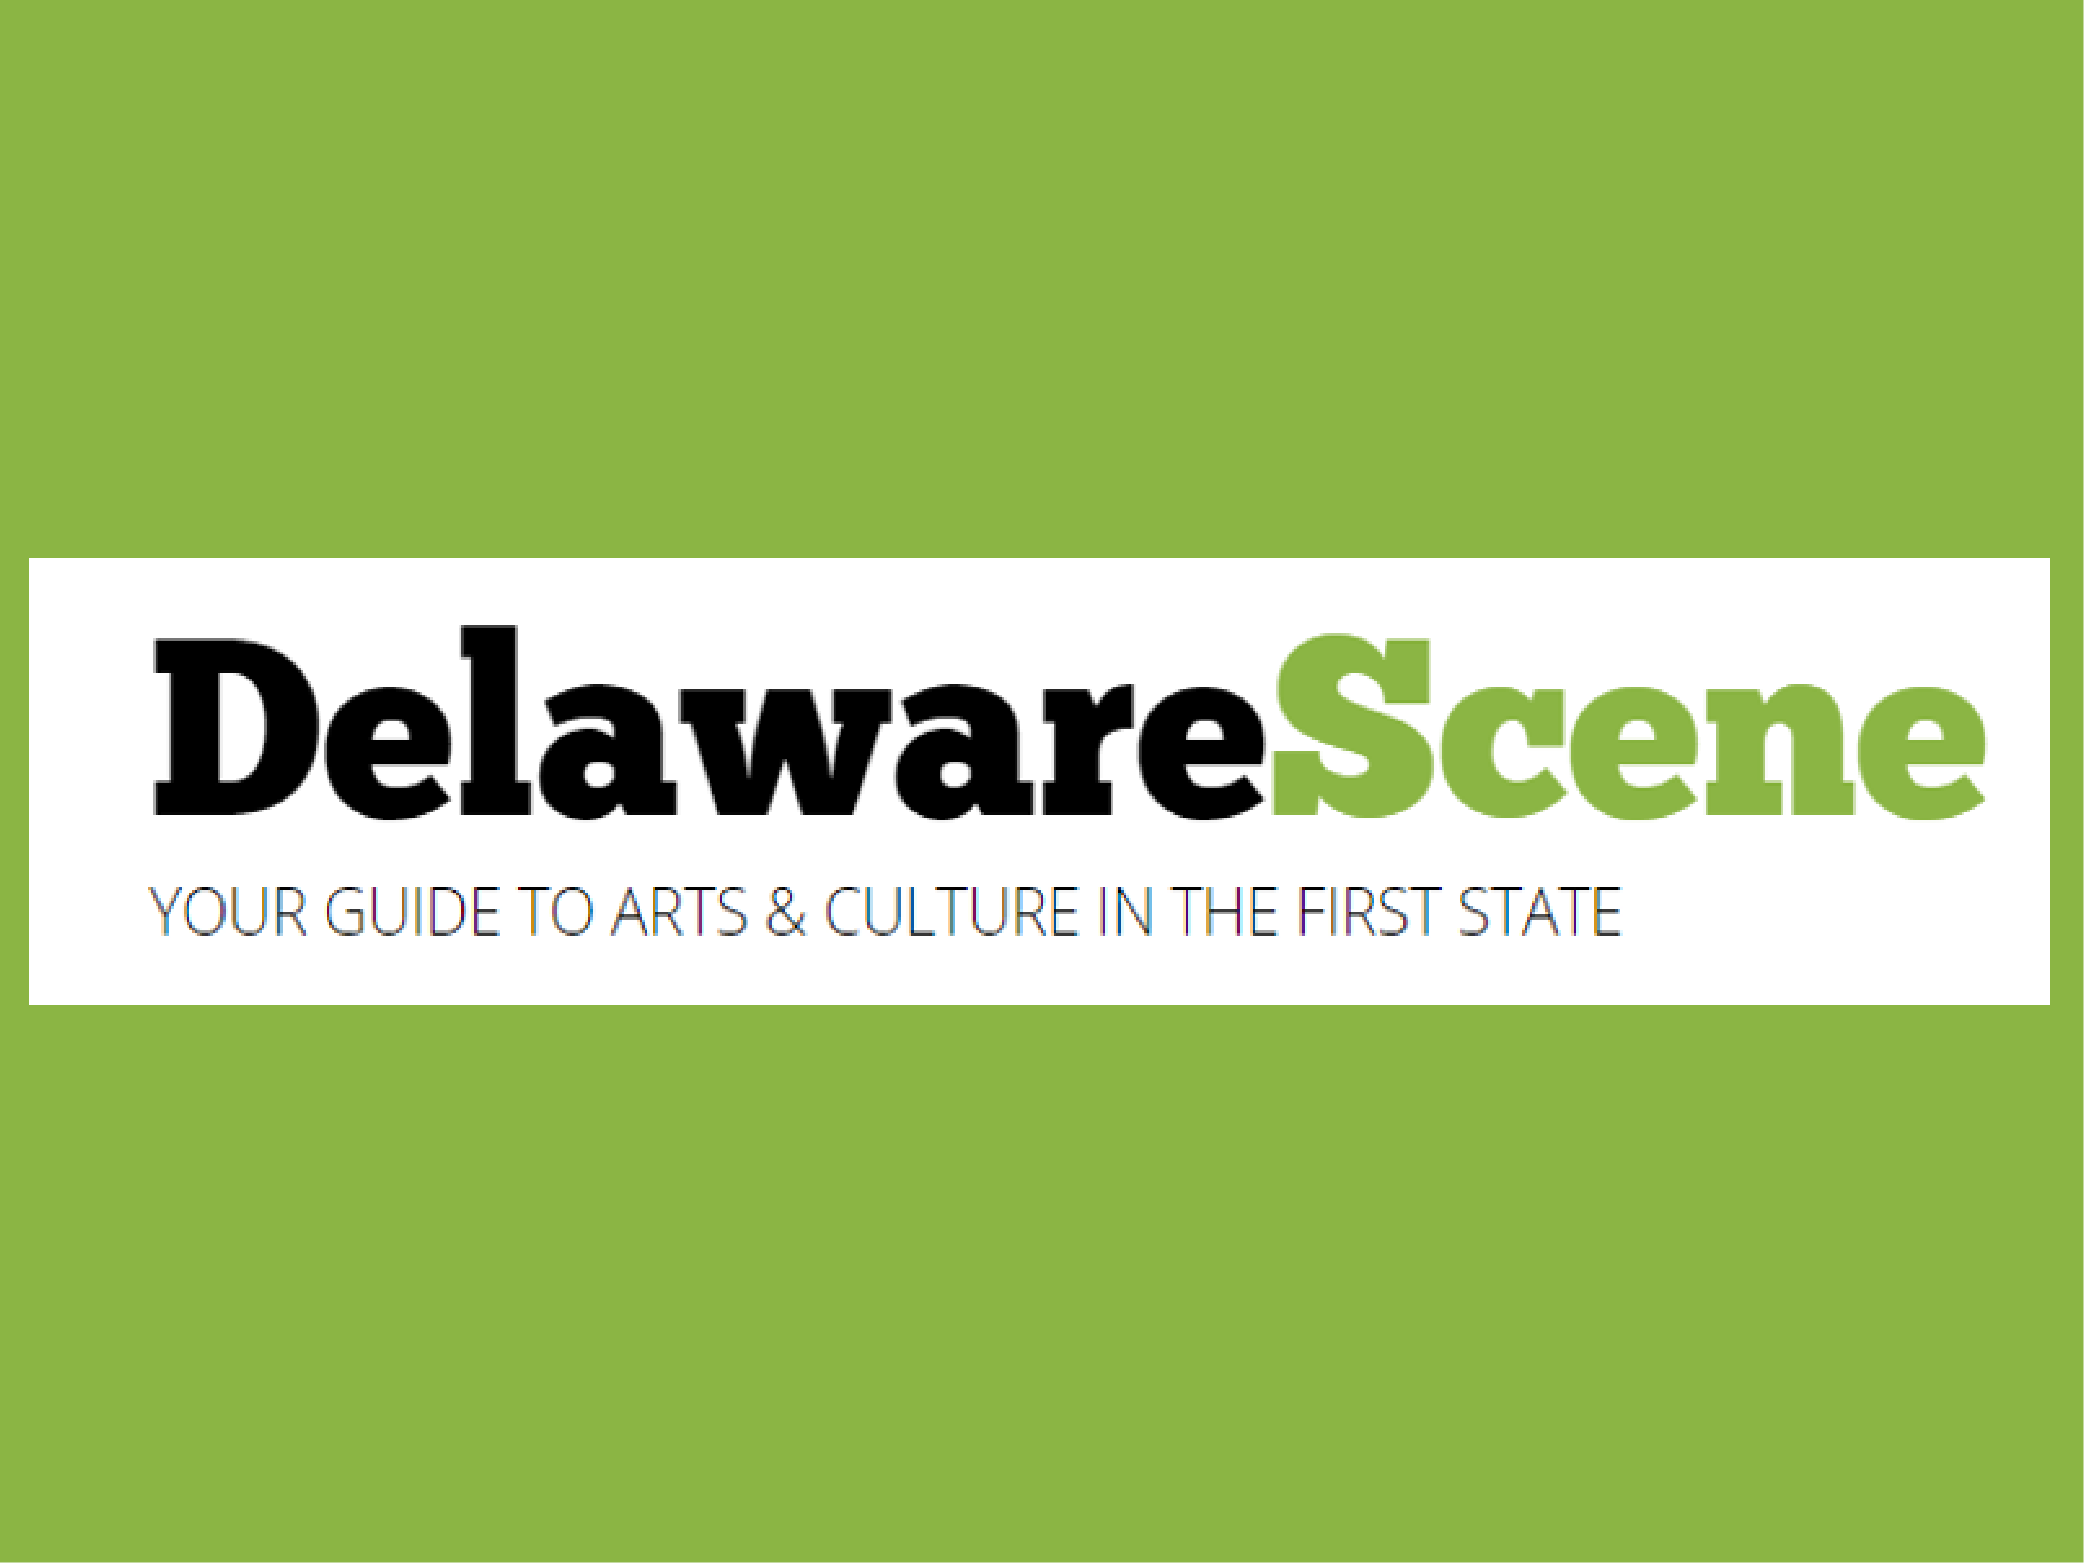 Delaware scene things to do in wilmington de